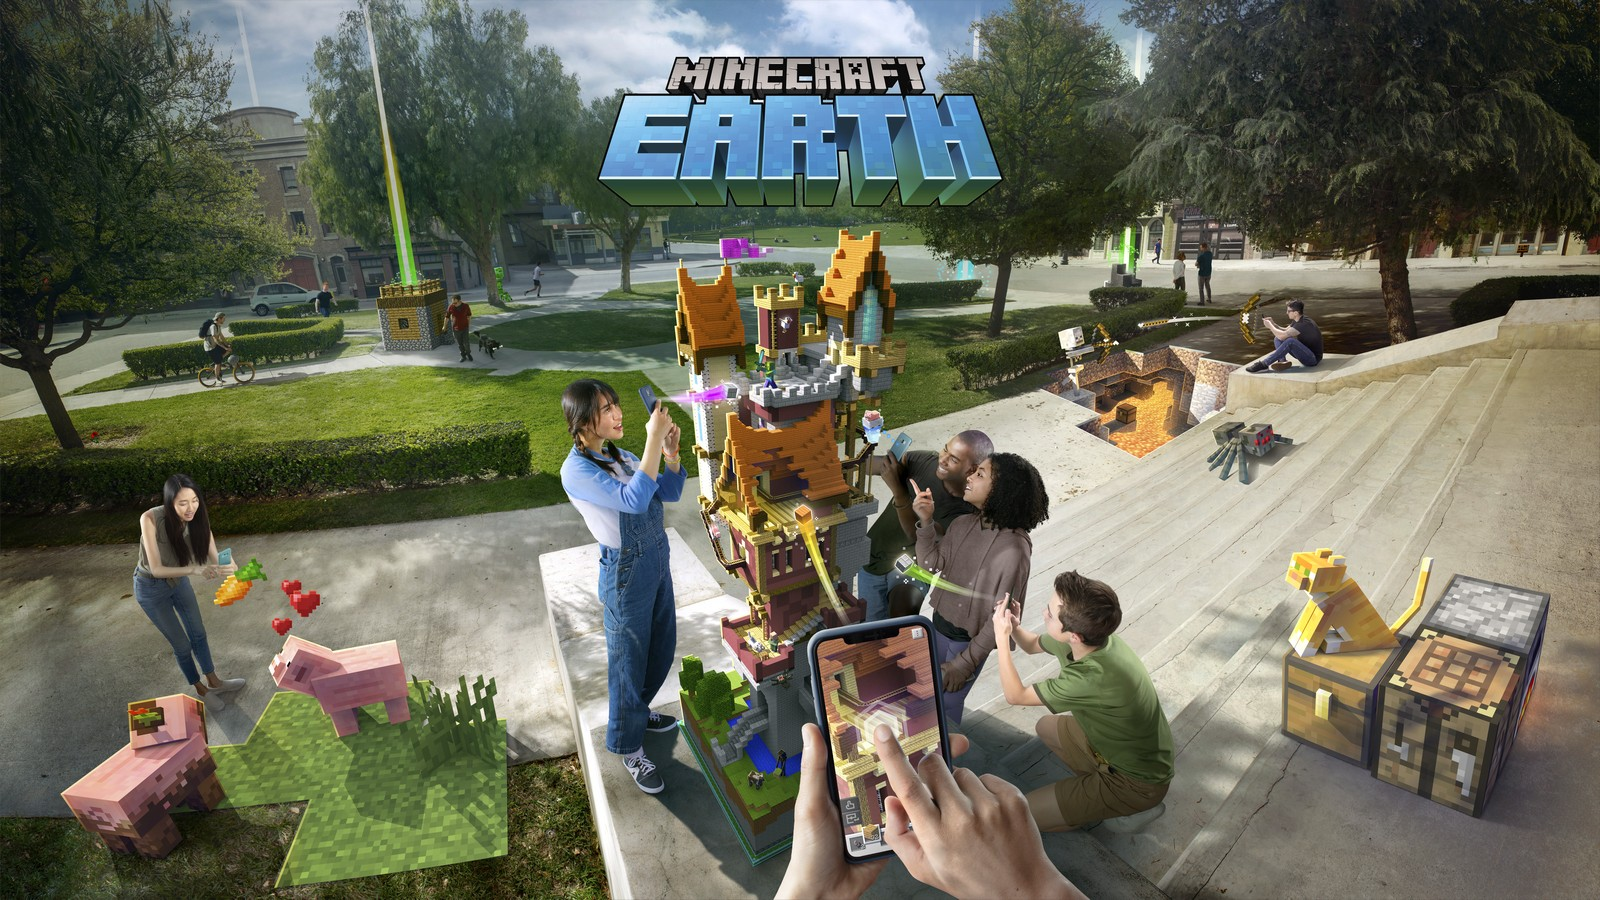 Microsoft Reveals Minecraft Earth, A New Pokemon Go-Style AR Game